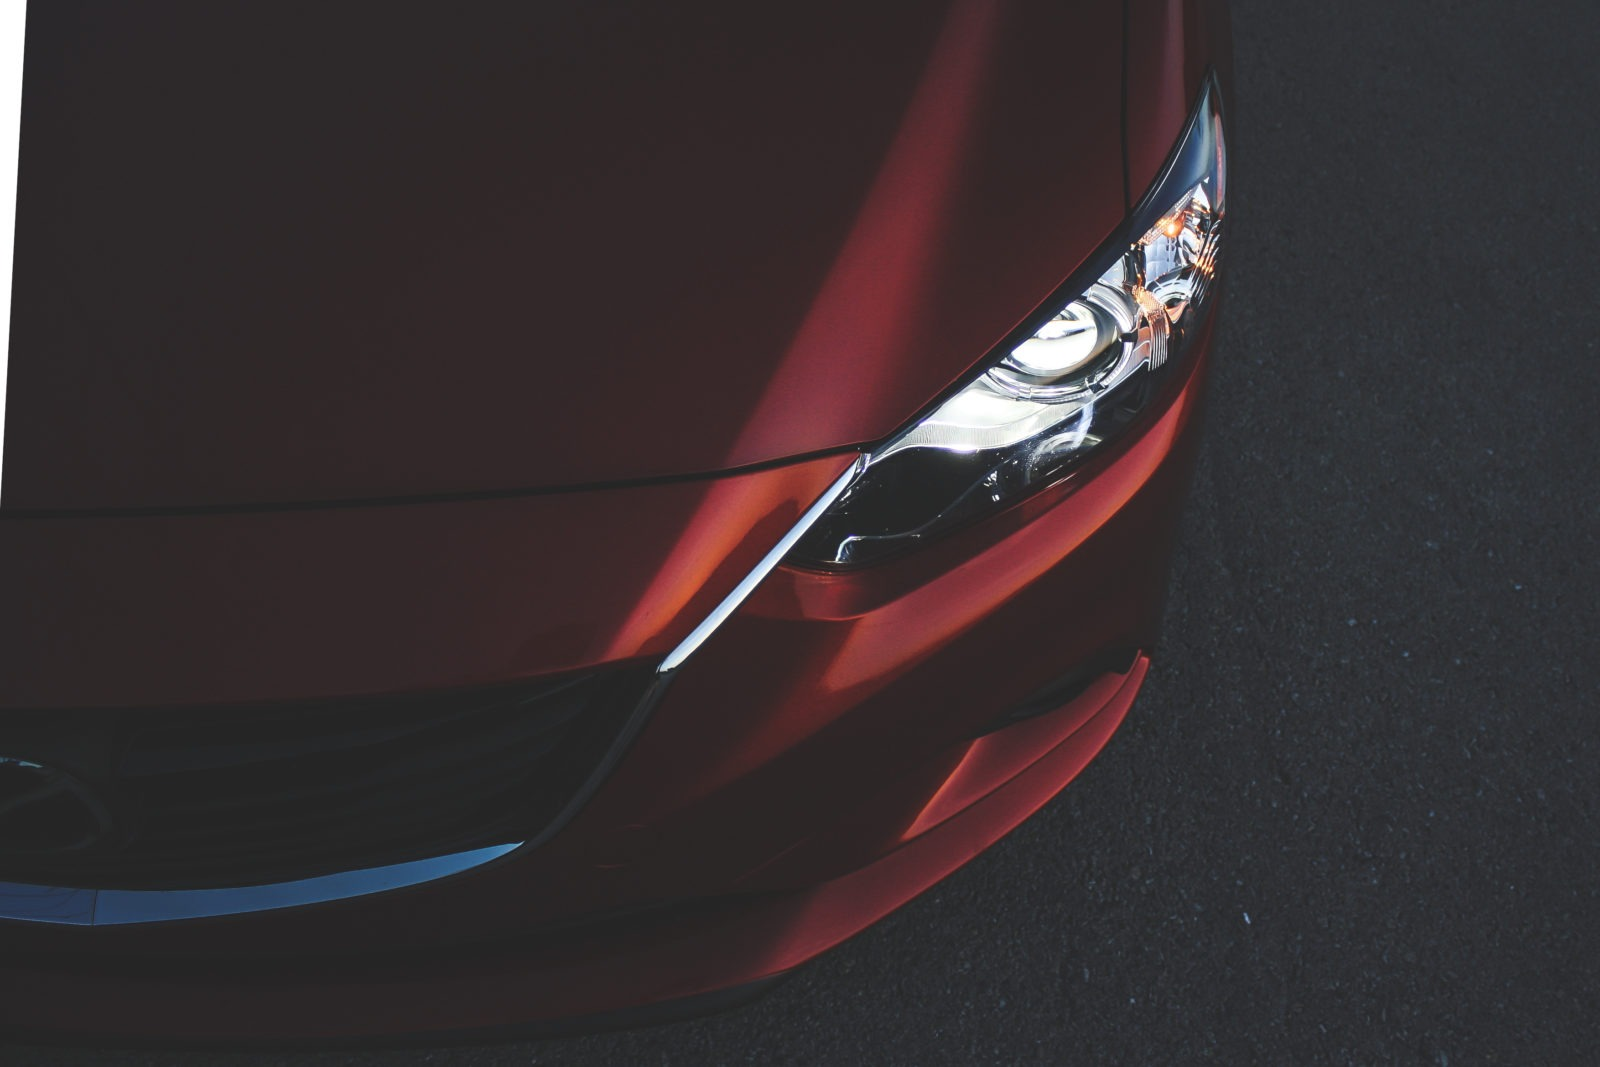 Tips While Financing a Car to Save Money